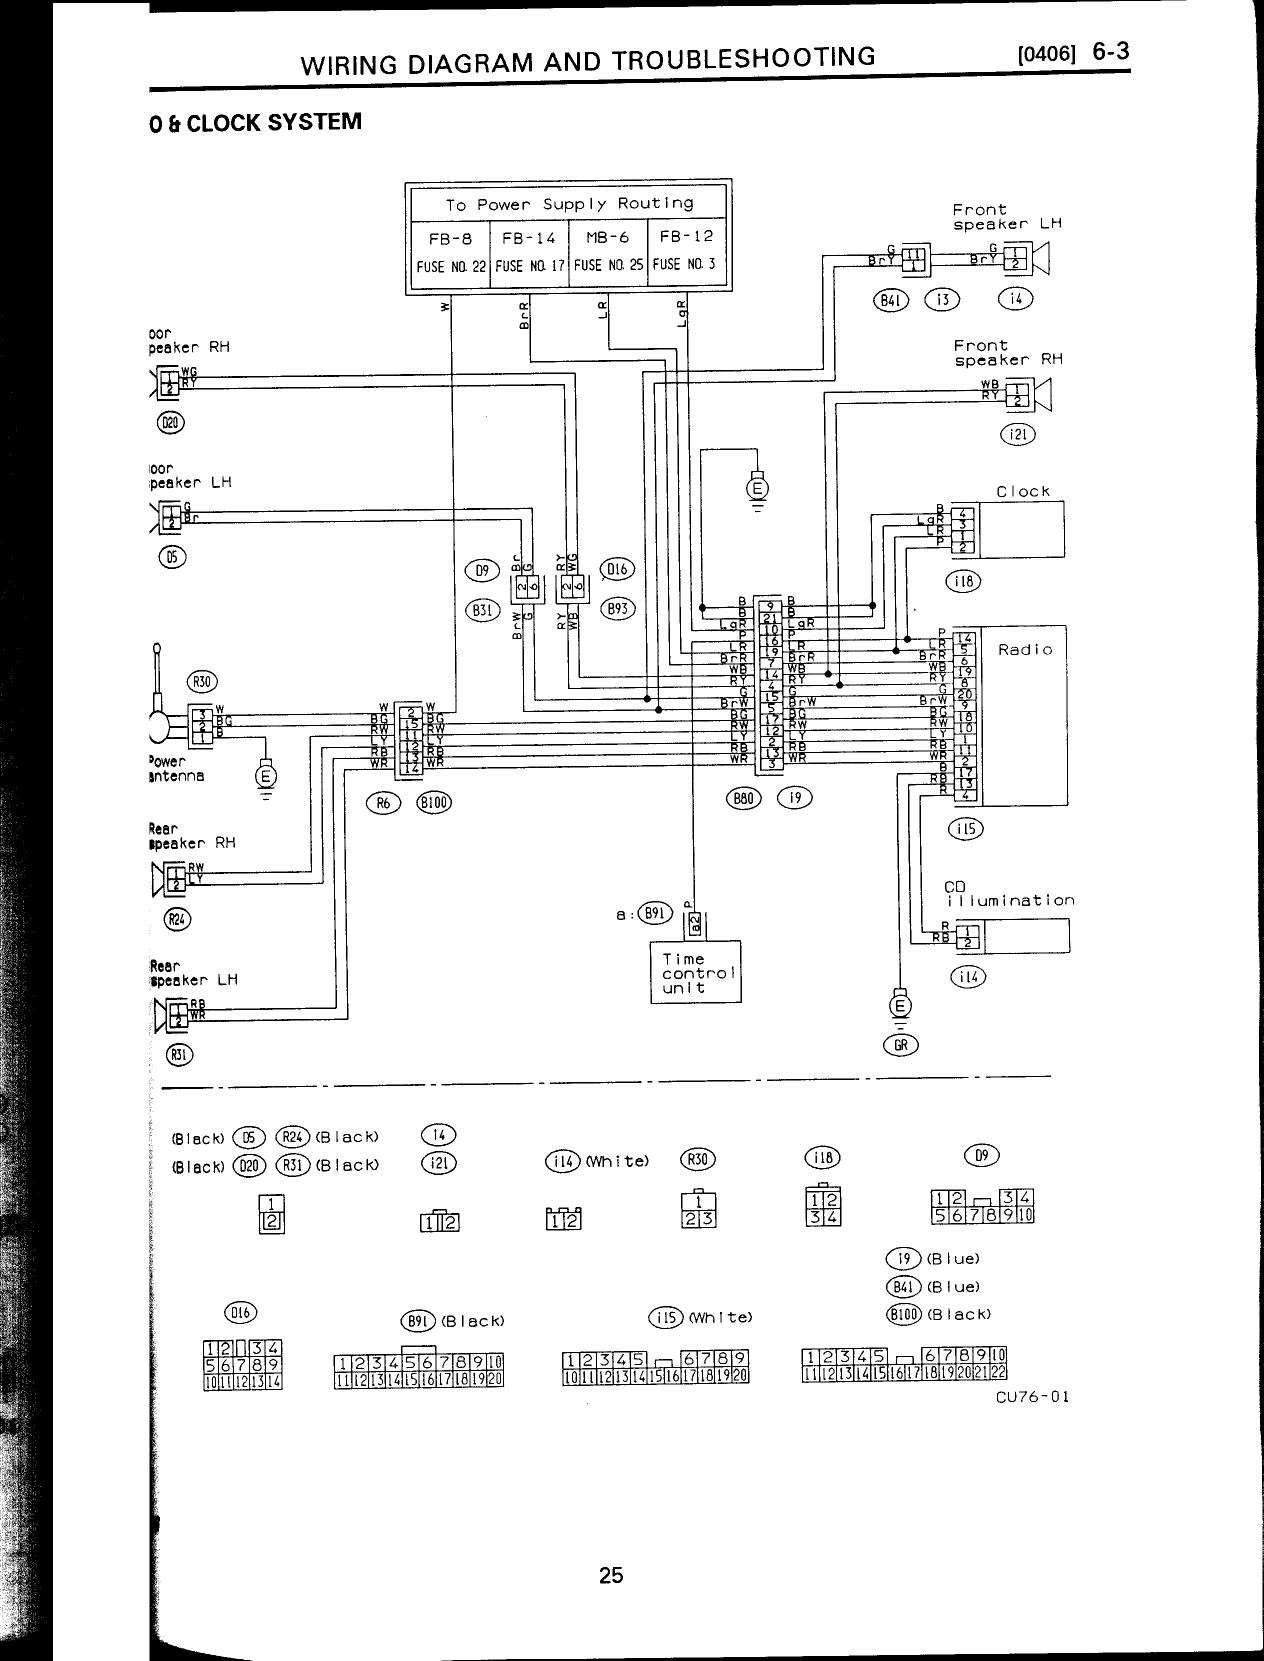 subaru svx wiring diagram subaru wiring diagrams online subaru svx receiver and speaker installation hu install